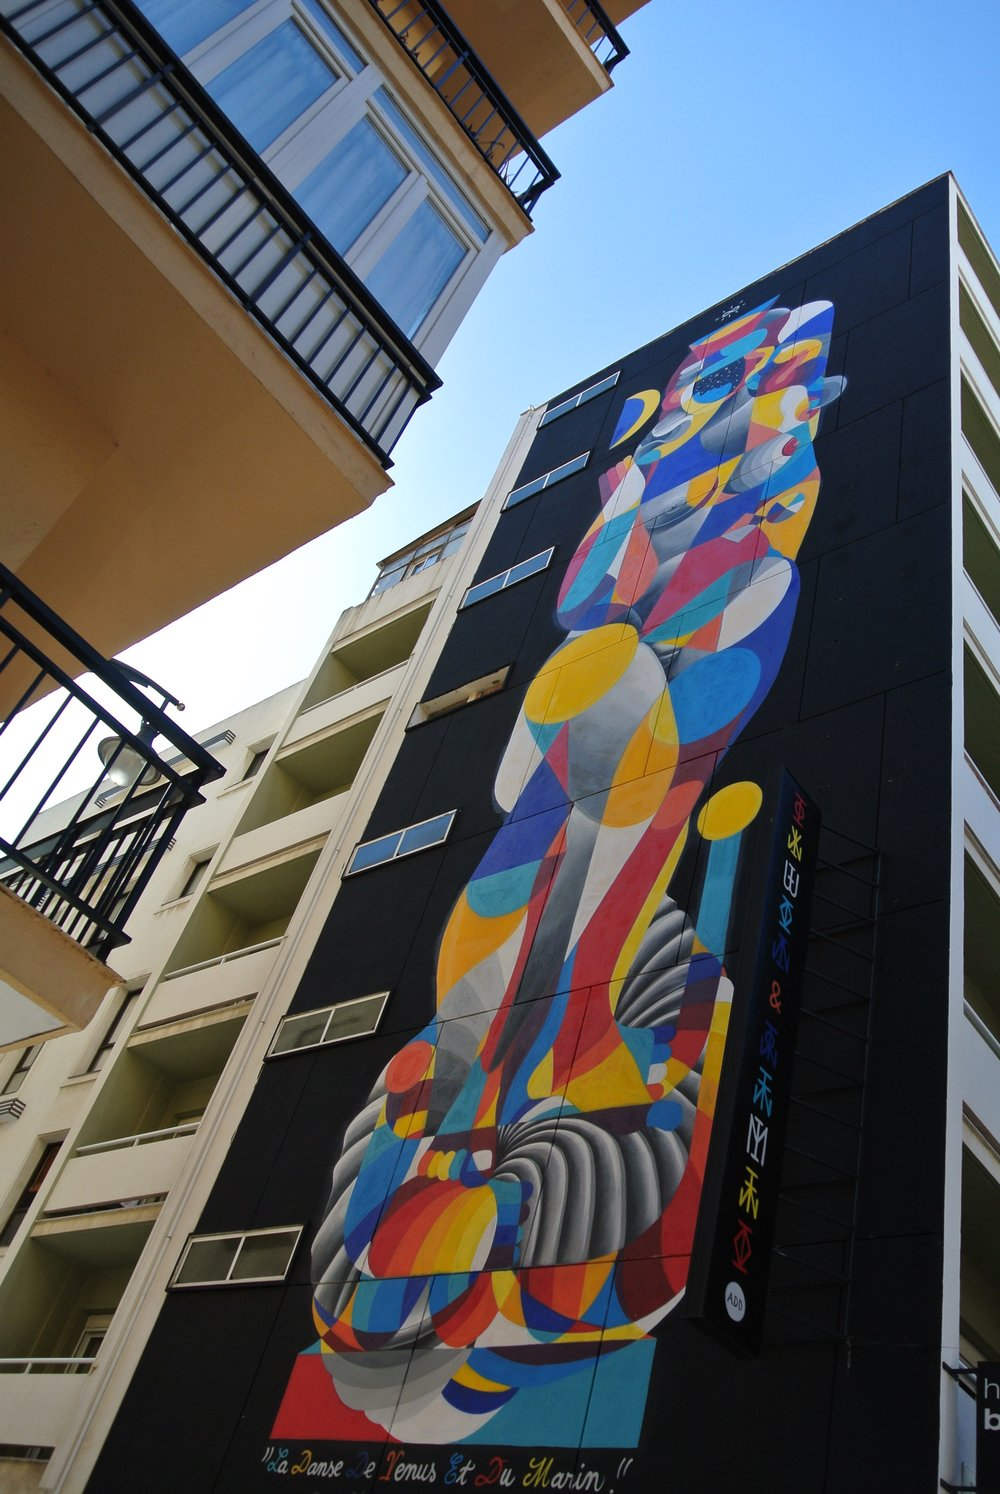 The bold multistory mural on the exterior of the Hotel Soho Bahía,  La Danse de Venus et du Marin  by Remed and Okuda, is a combination of vibrant colors and shapes